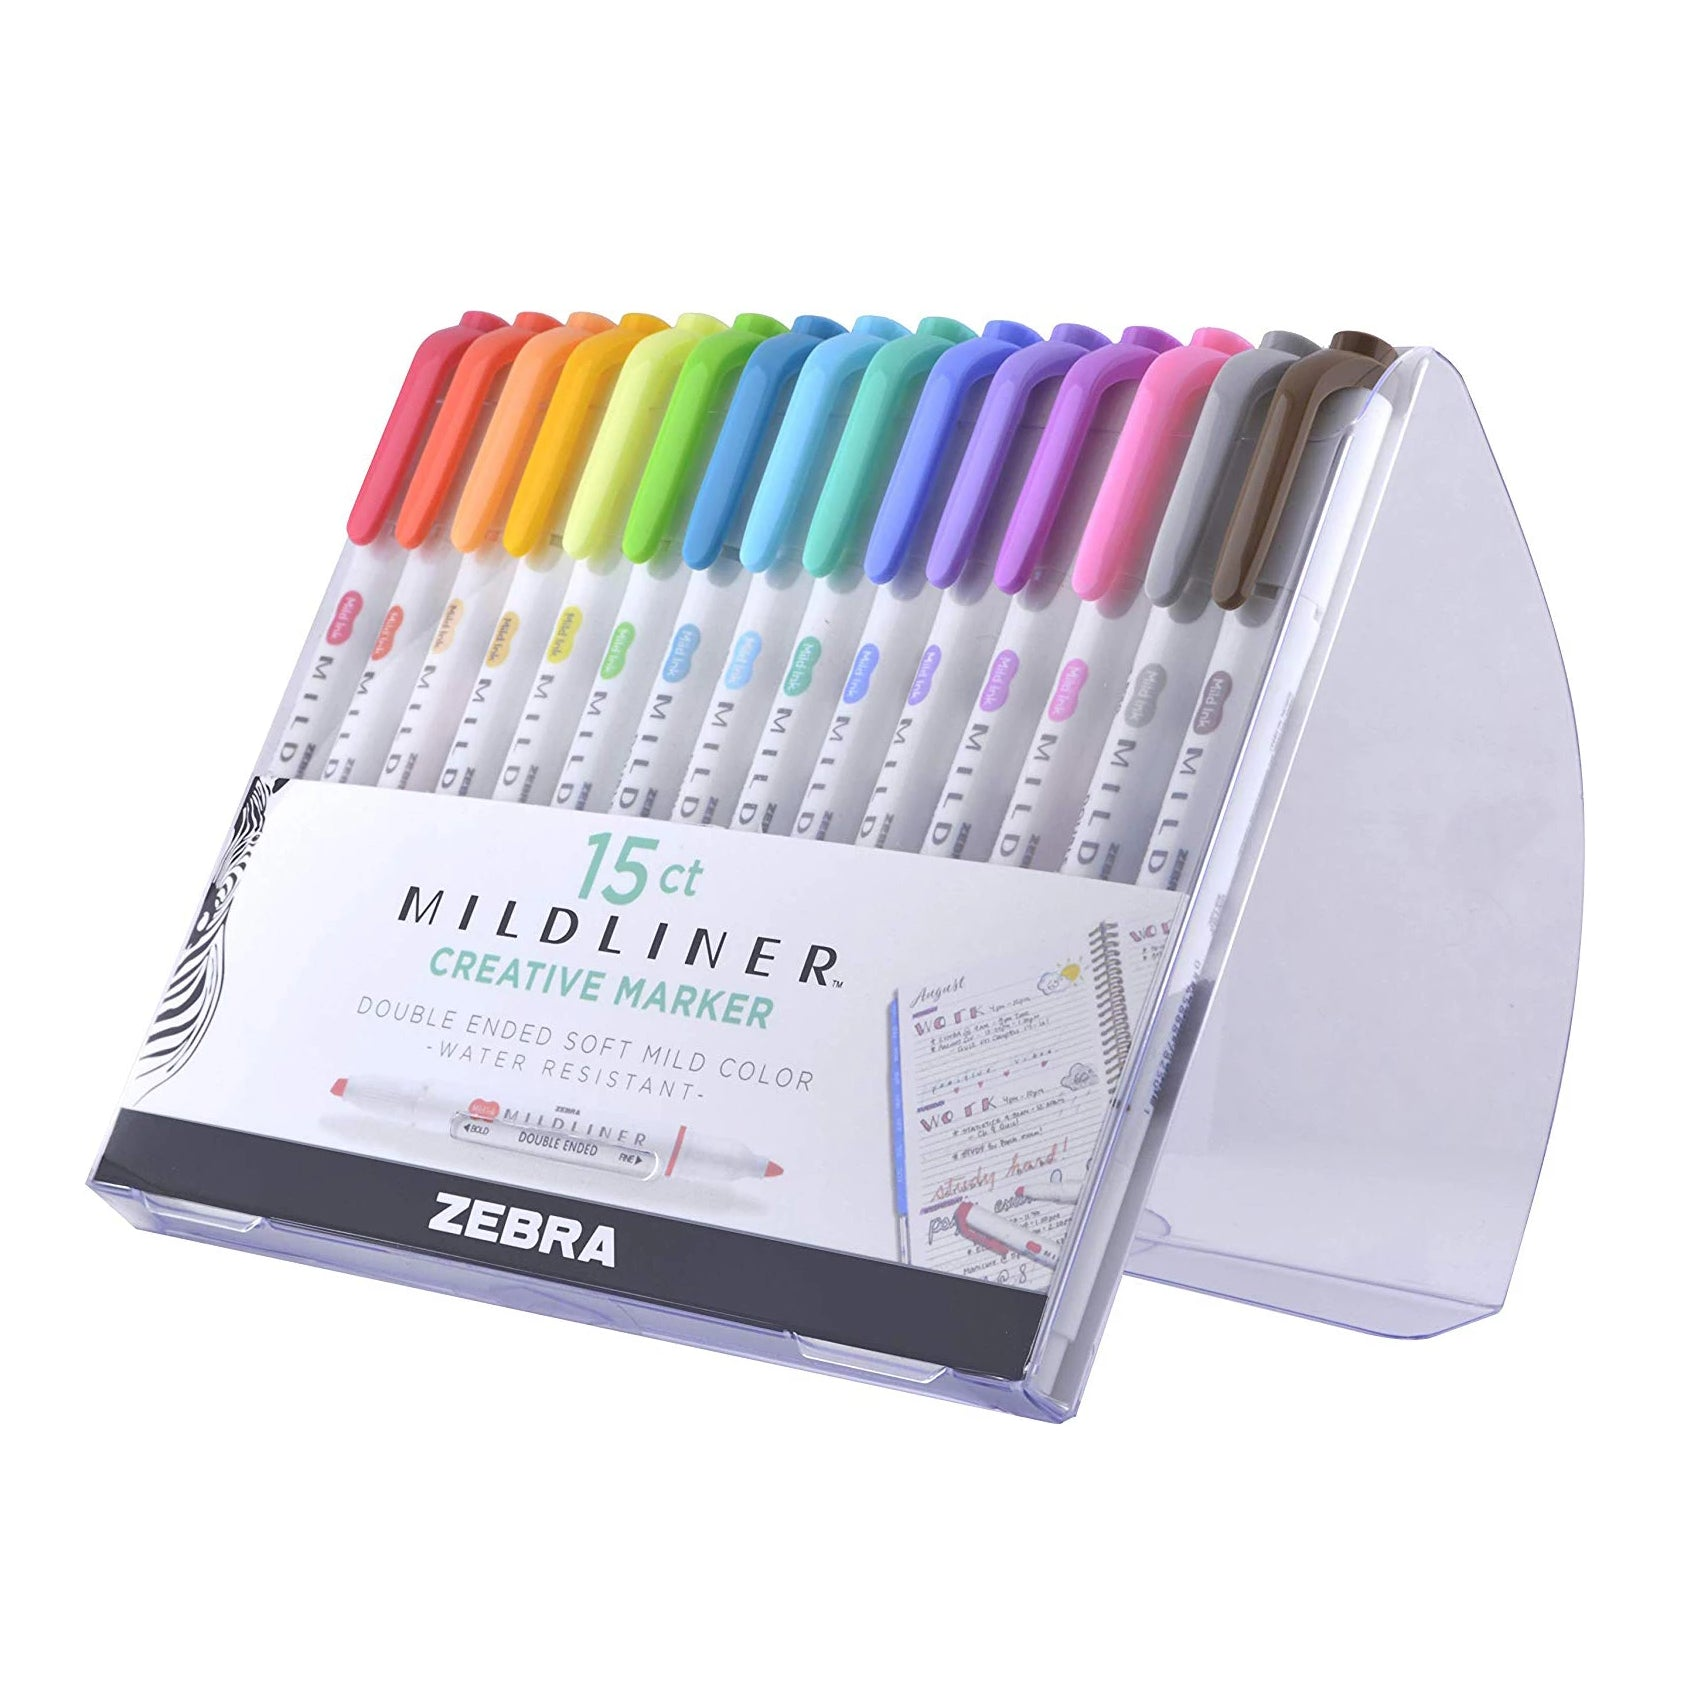 "Zebra ""Mildliner"" Double-Ended Highlighter - 15 piece set - by Zebra - K. A. Artist Shop"